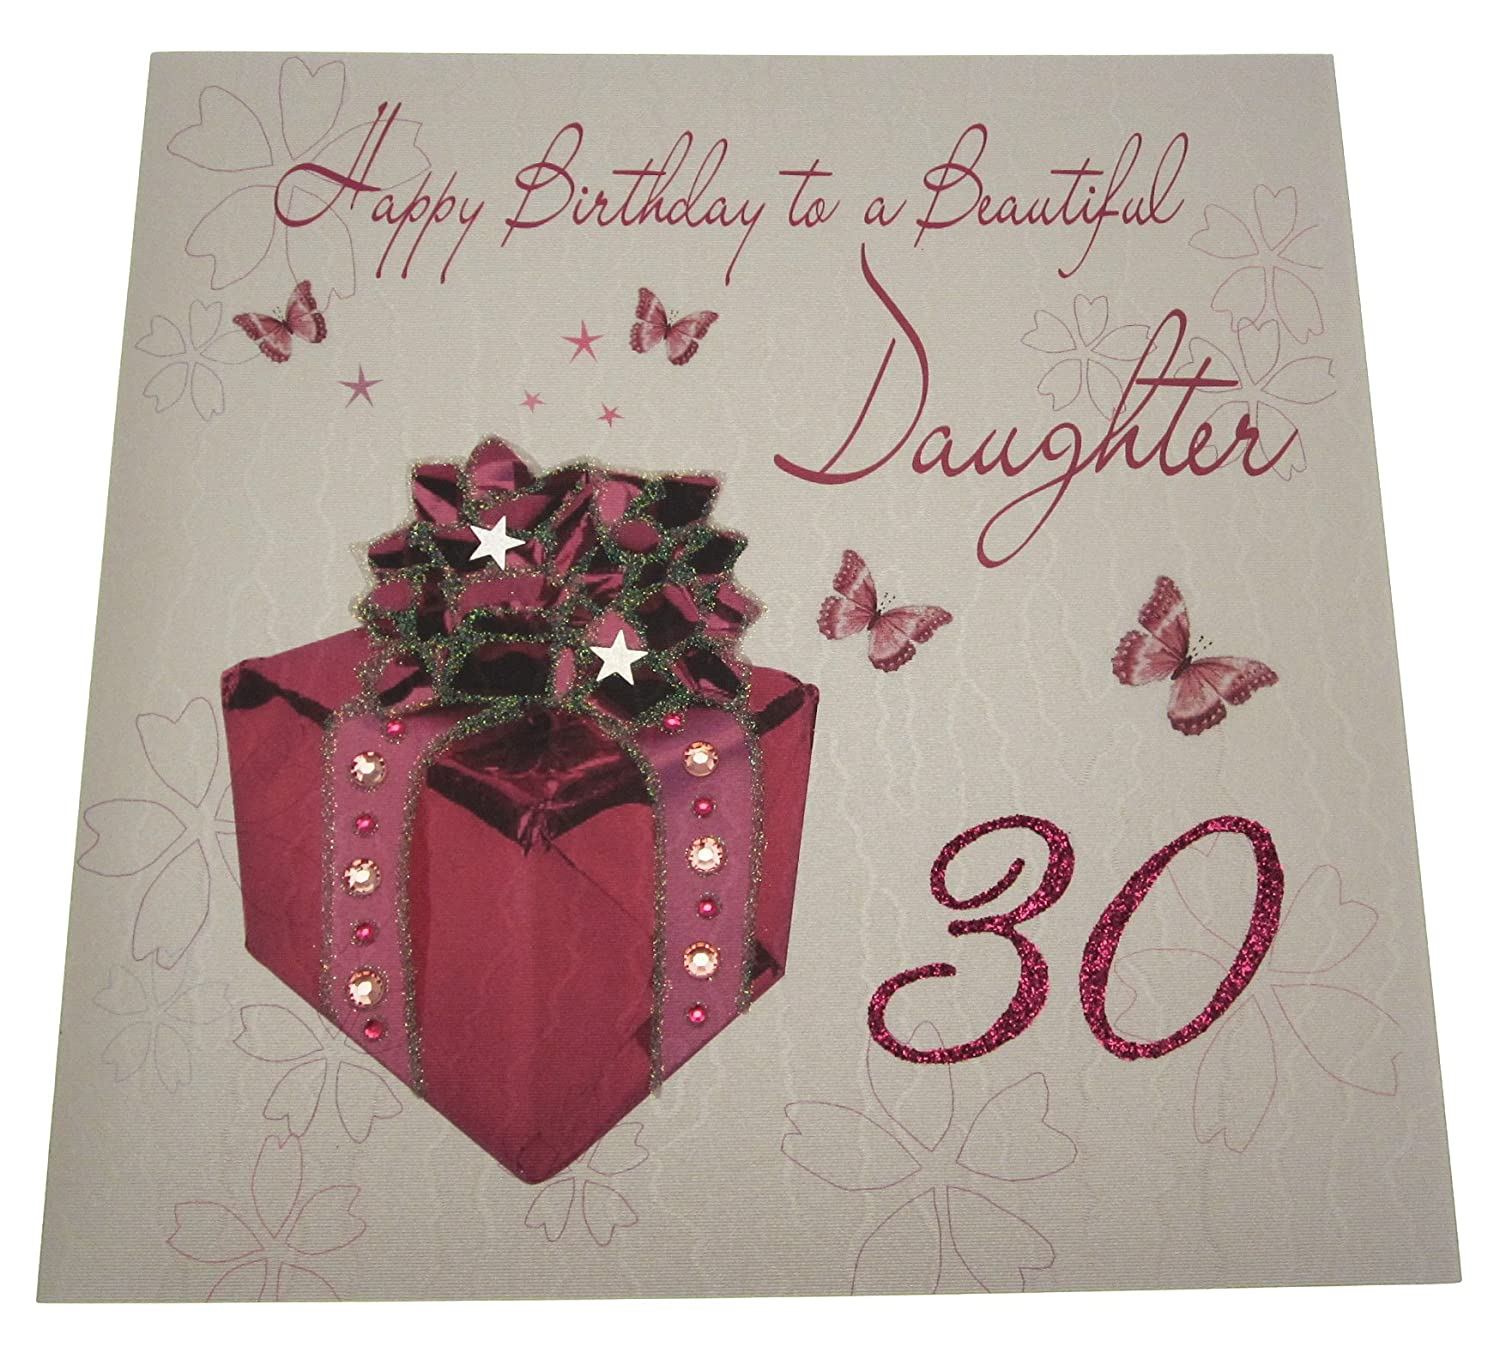 White cotton cards code xlwb103 happy birthday to a beautiful white cotton cards code xlwb103 happy birthday to a beautiful daughter 30 handmade large 30th birthday card present amazon kitchen home kristyandbryce Choice Image